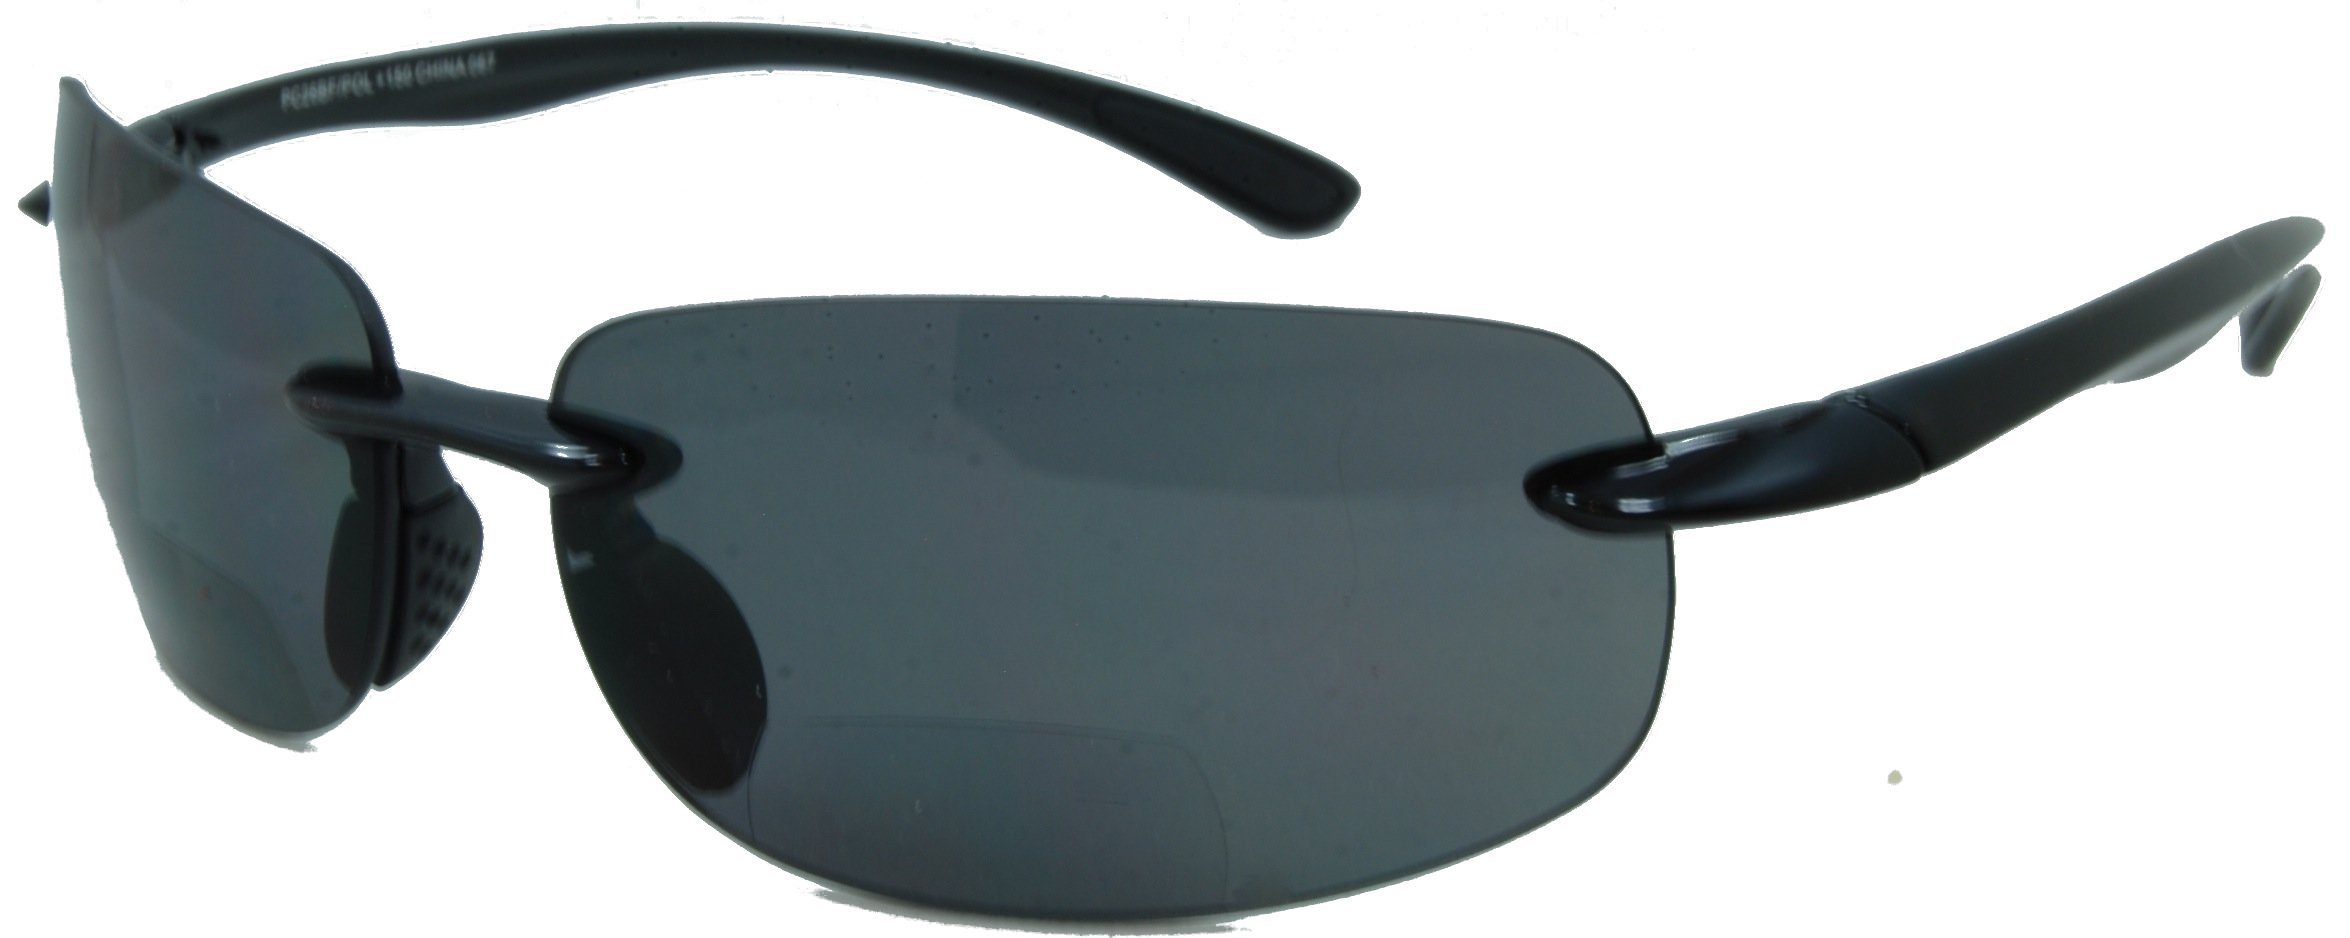 In Style Eyes – Lovin' Maui Wrap Bifocal Sunglasses – Polarized – Black 2.00 by In Style Eyes